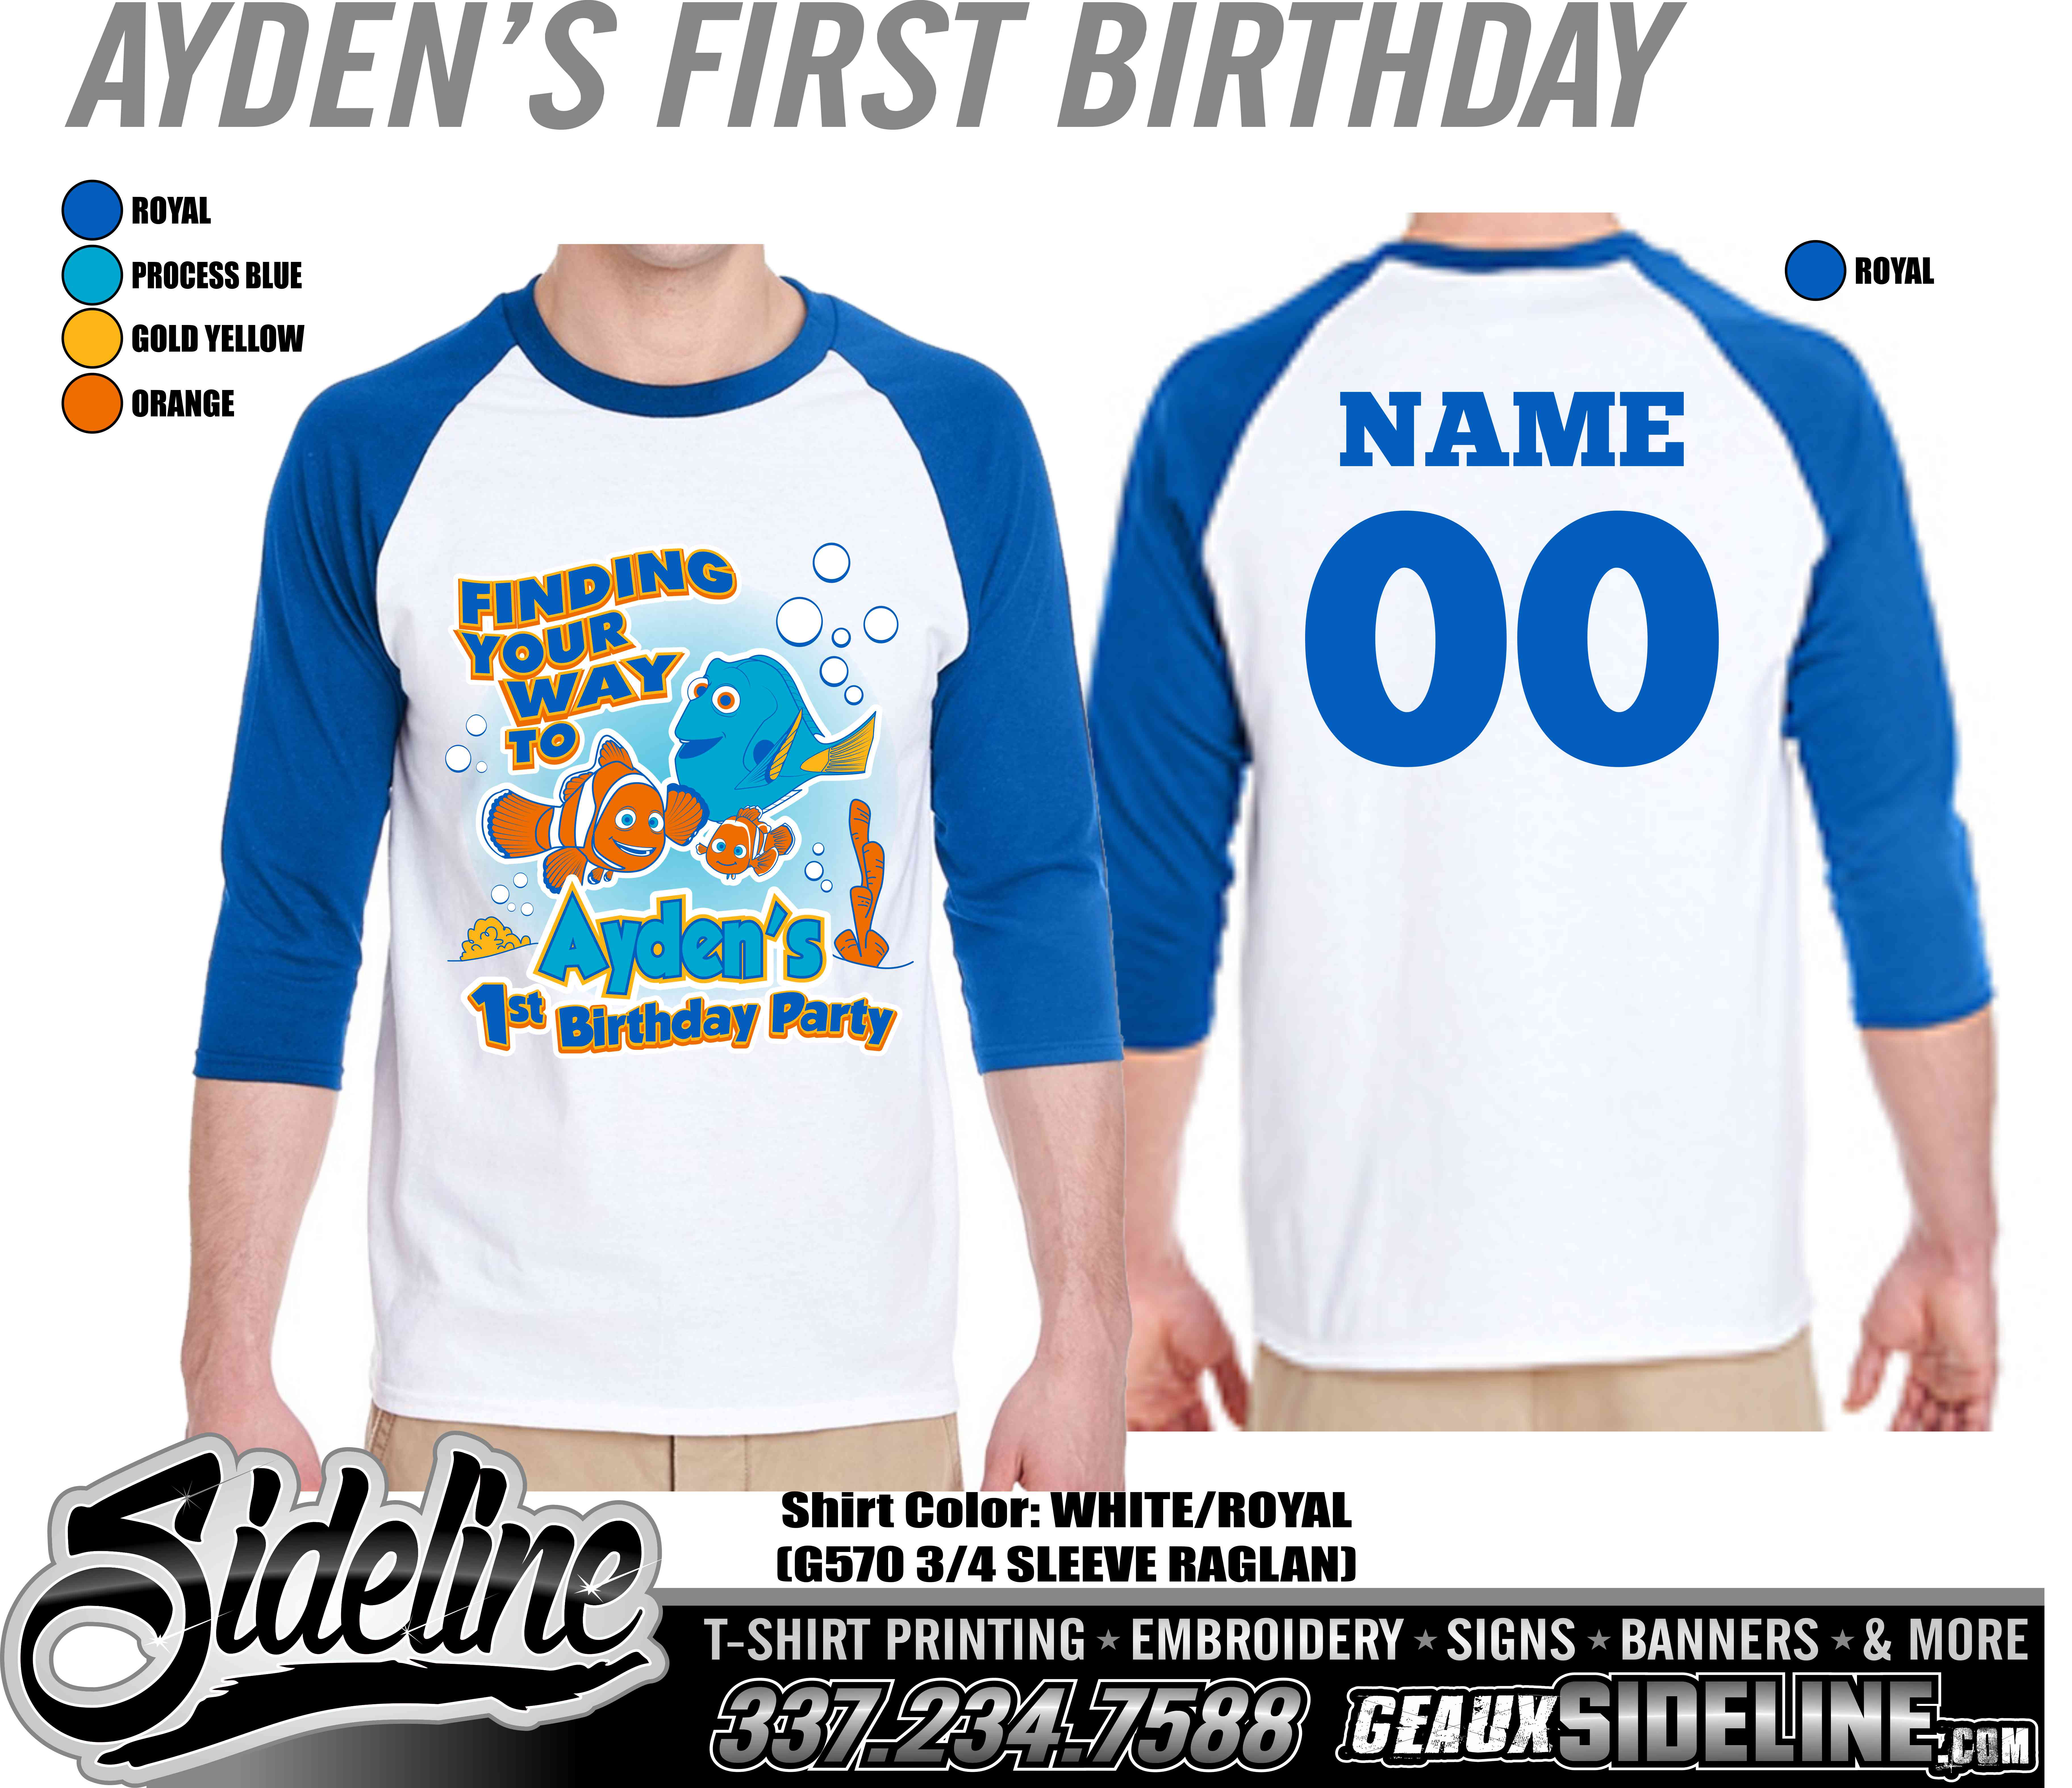 AYDEN'S FIRST BIRTHDAY - RAGLANS